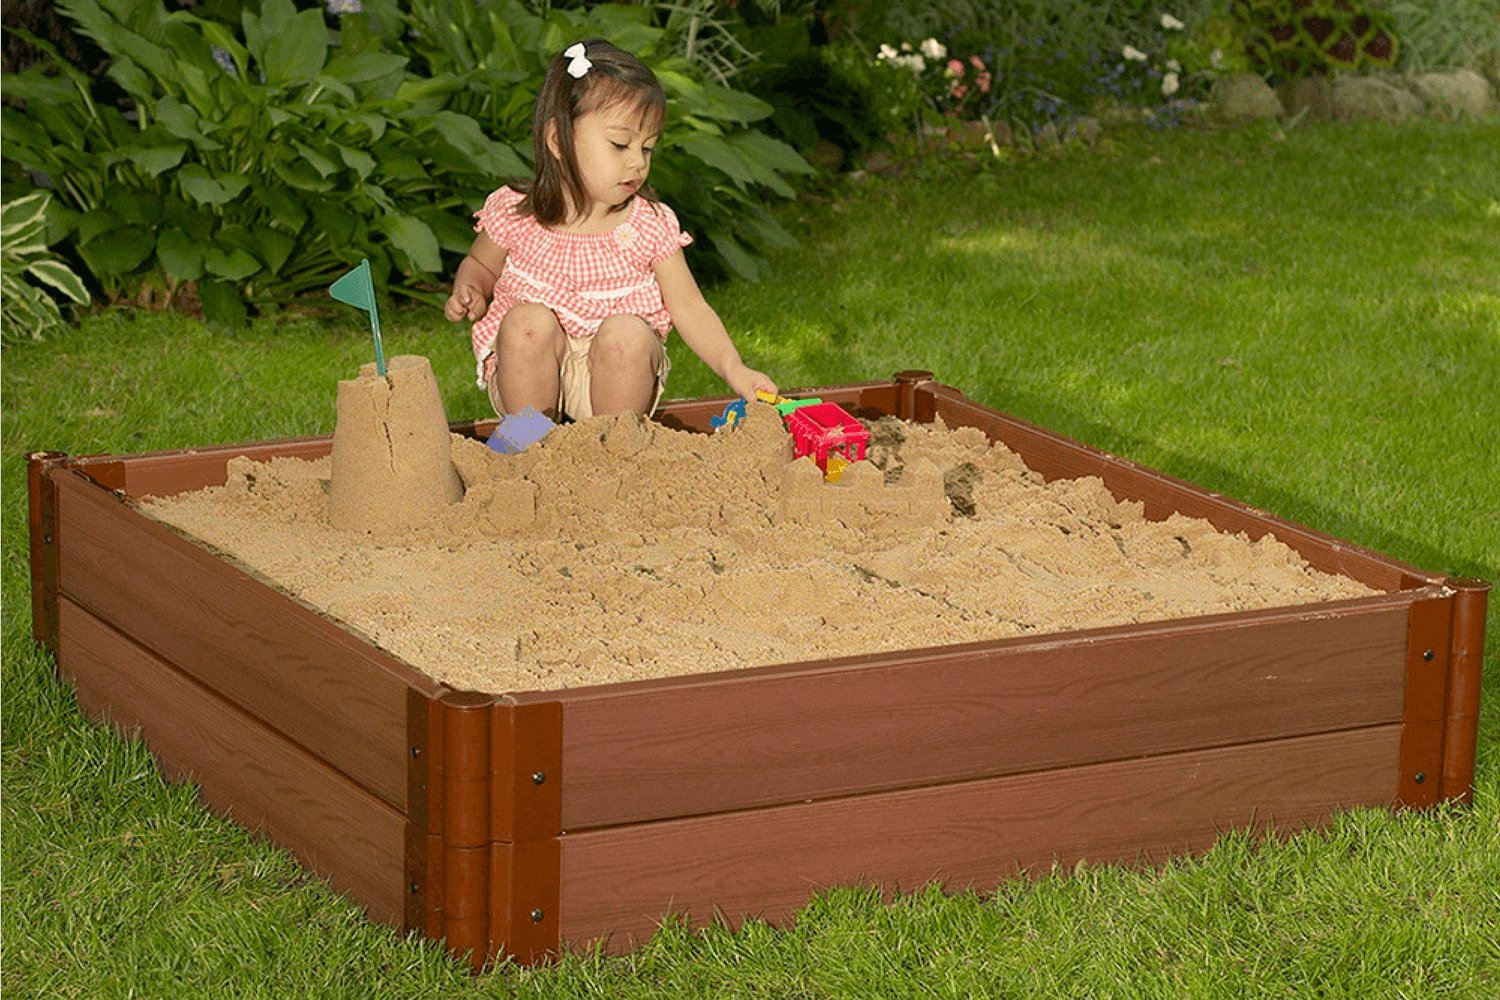 One Inch Series 4ft. x 4ft. x 11in. Composite Square Sandbox Kit by Frame It All (Image #2)